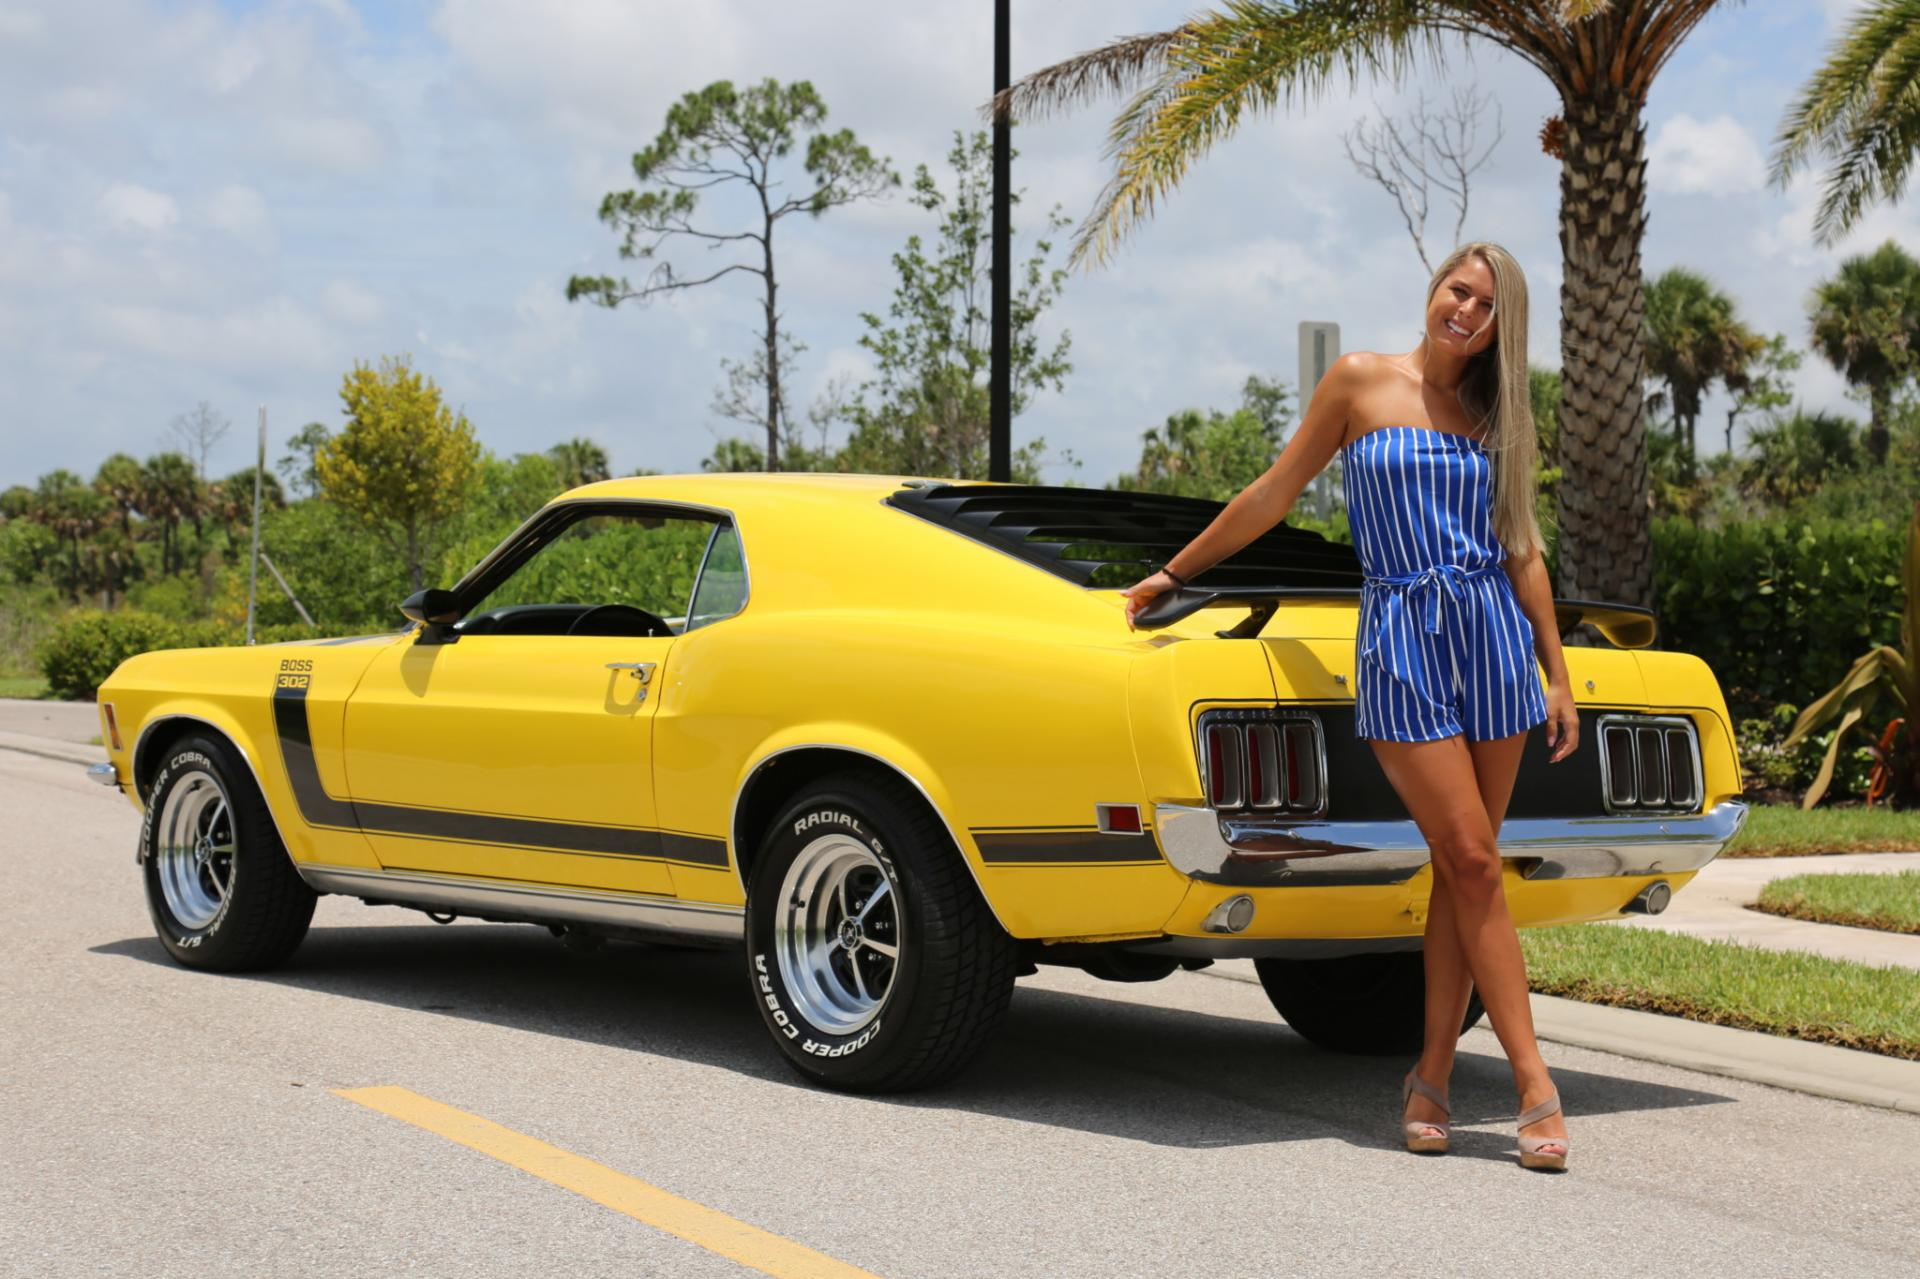 Used 1970 Ford Mustang 302 Boss for sale Sold at Muscle Cars for Sale Inc. in Fort Myers FL 33912 6